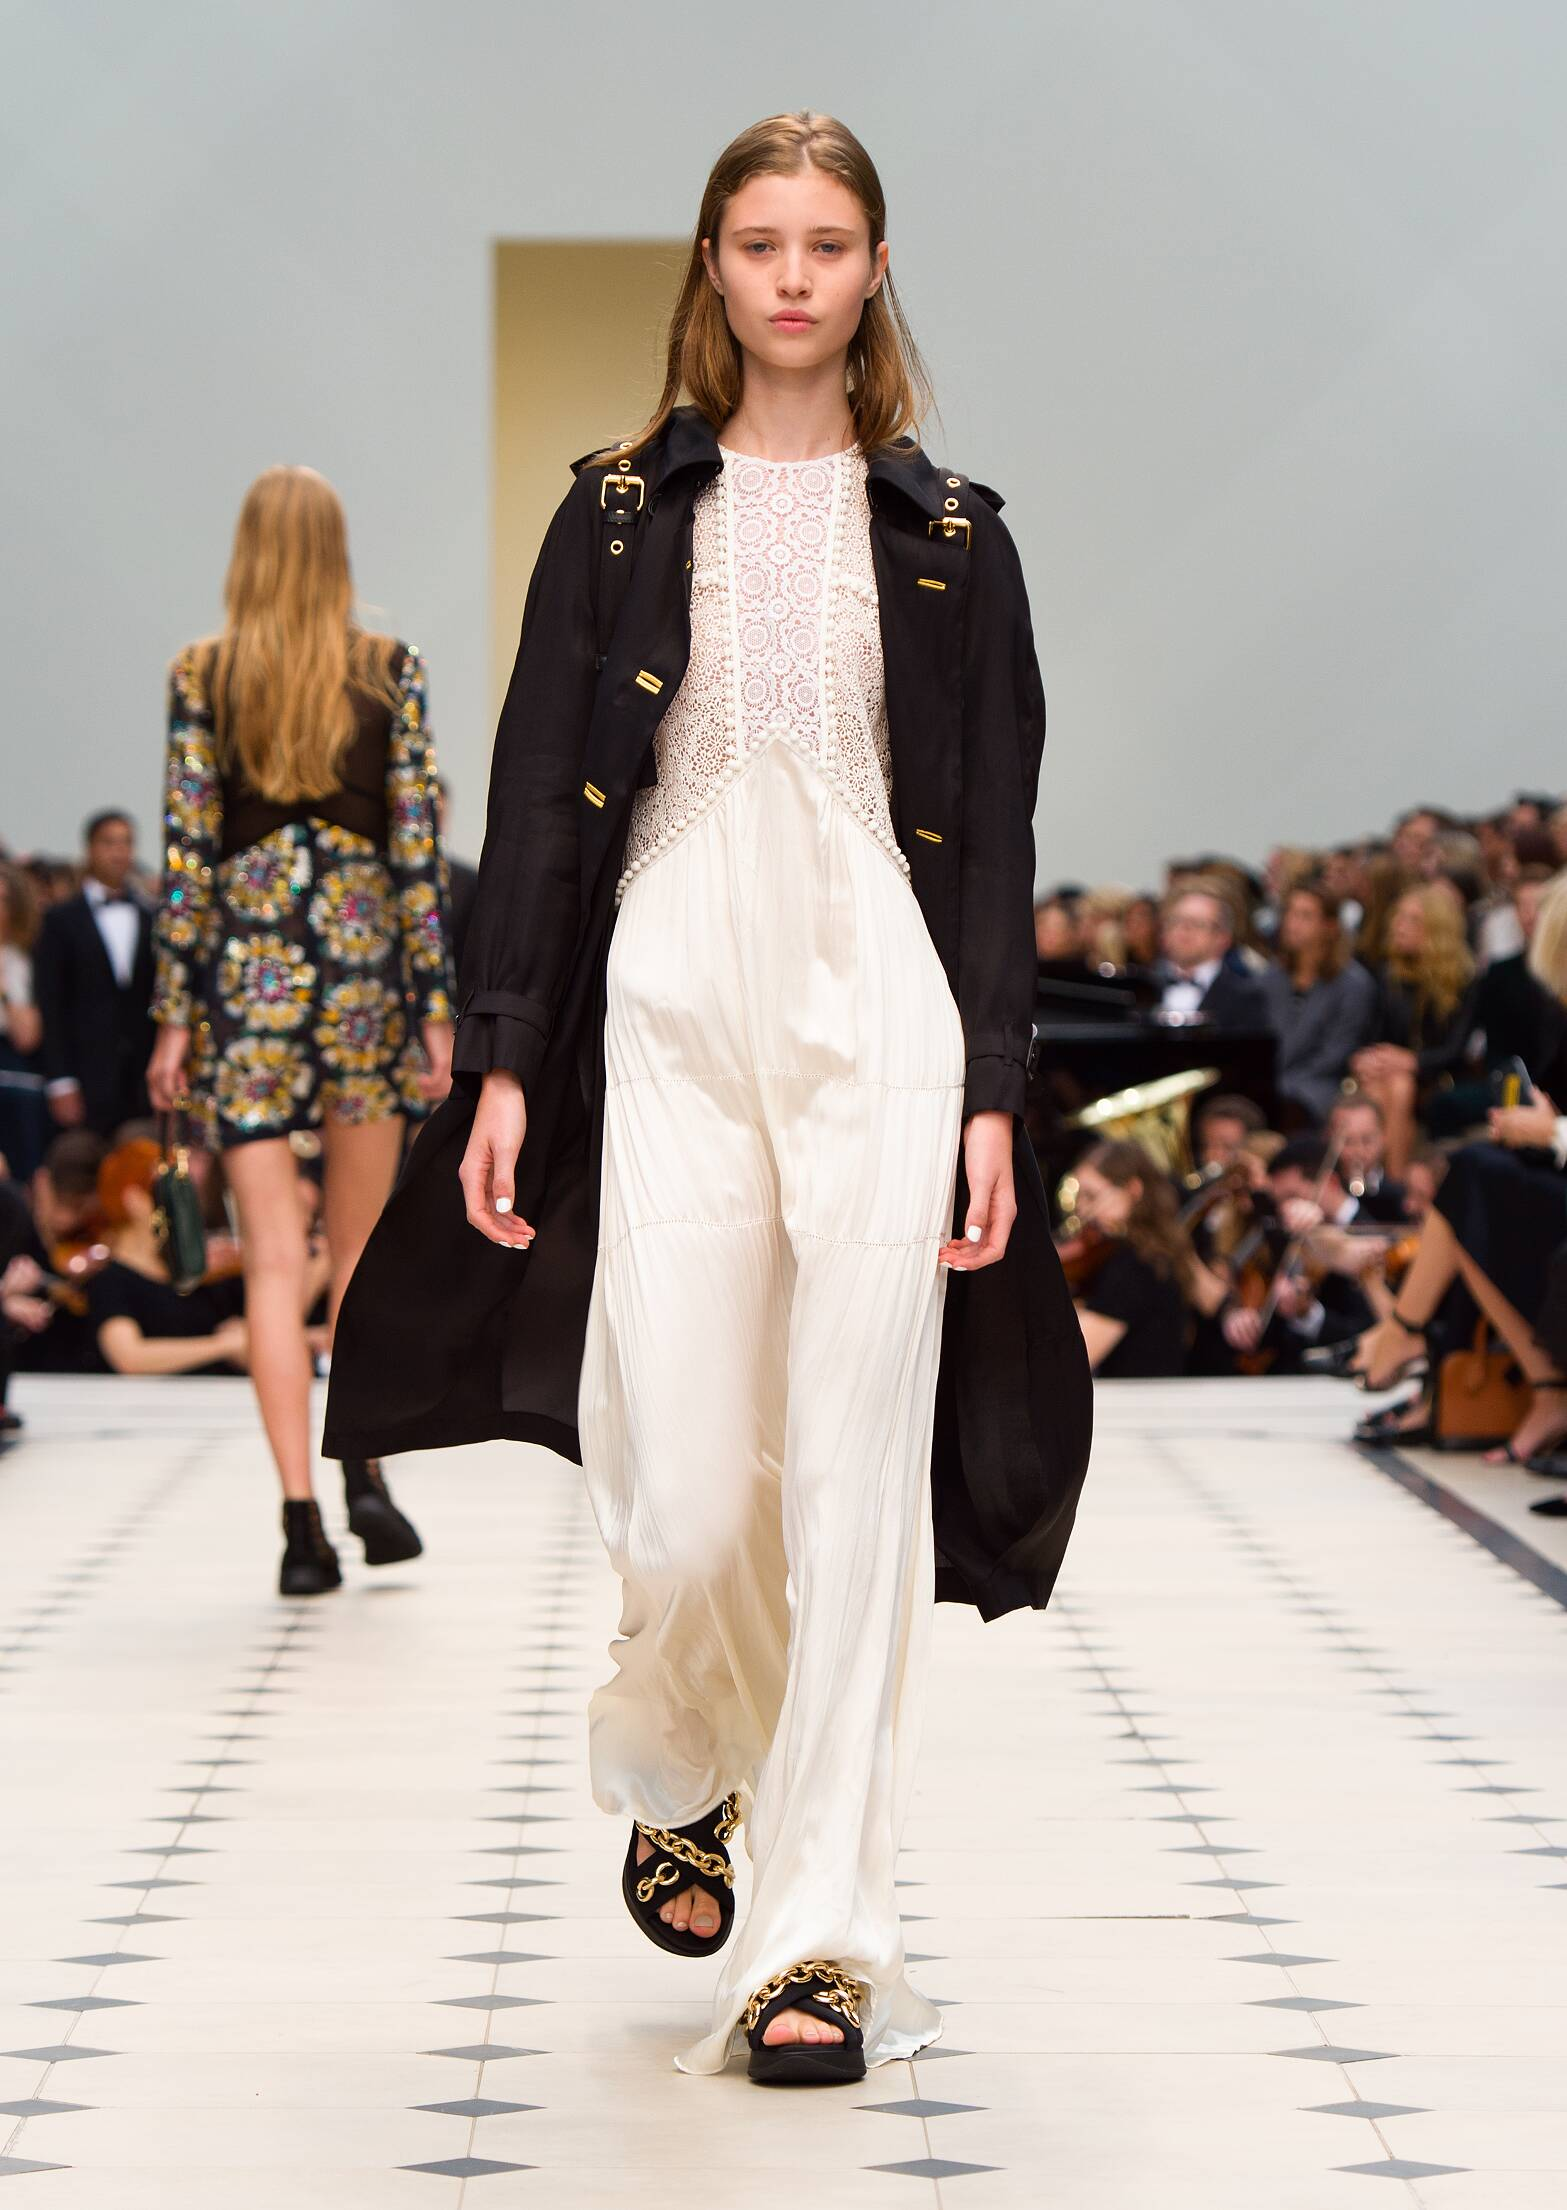 2016 Burberry Prorsum Summer Runway